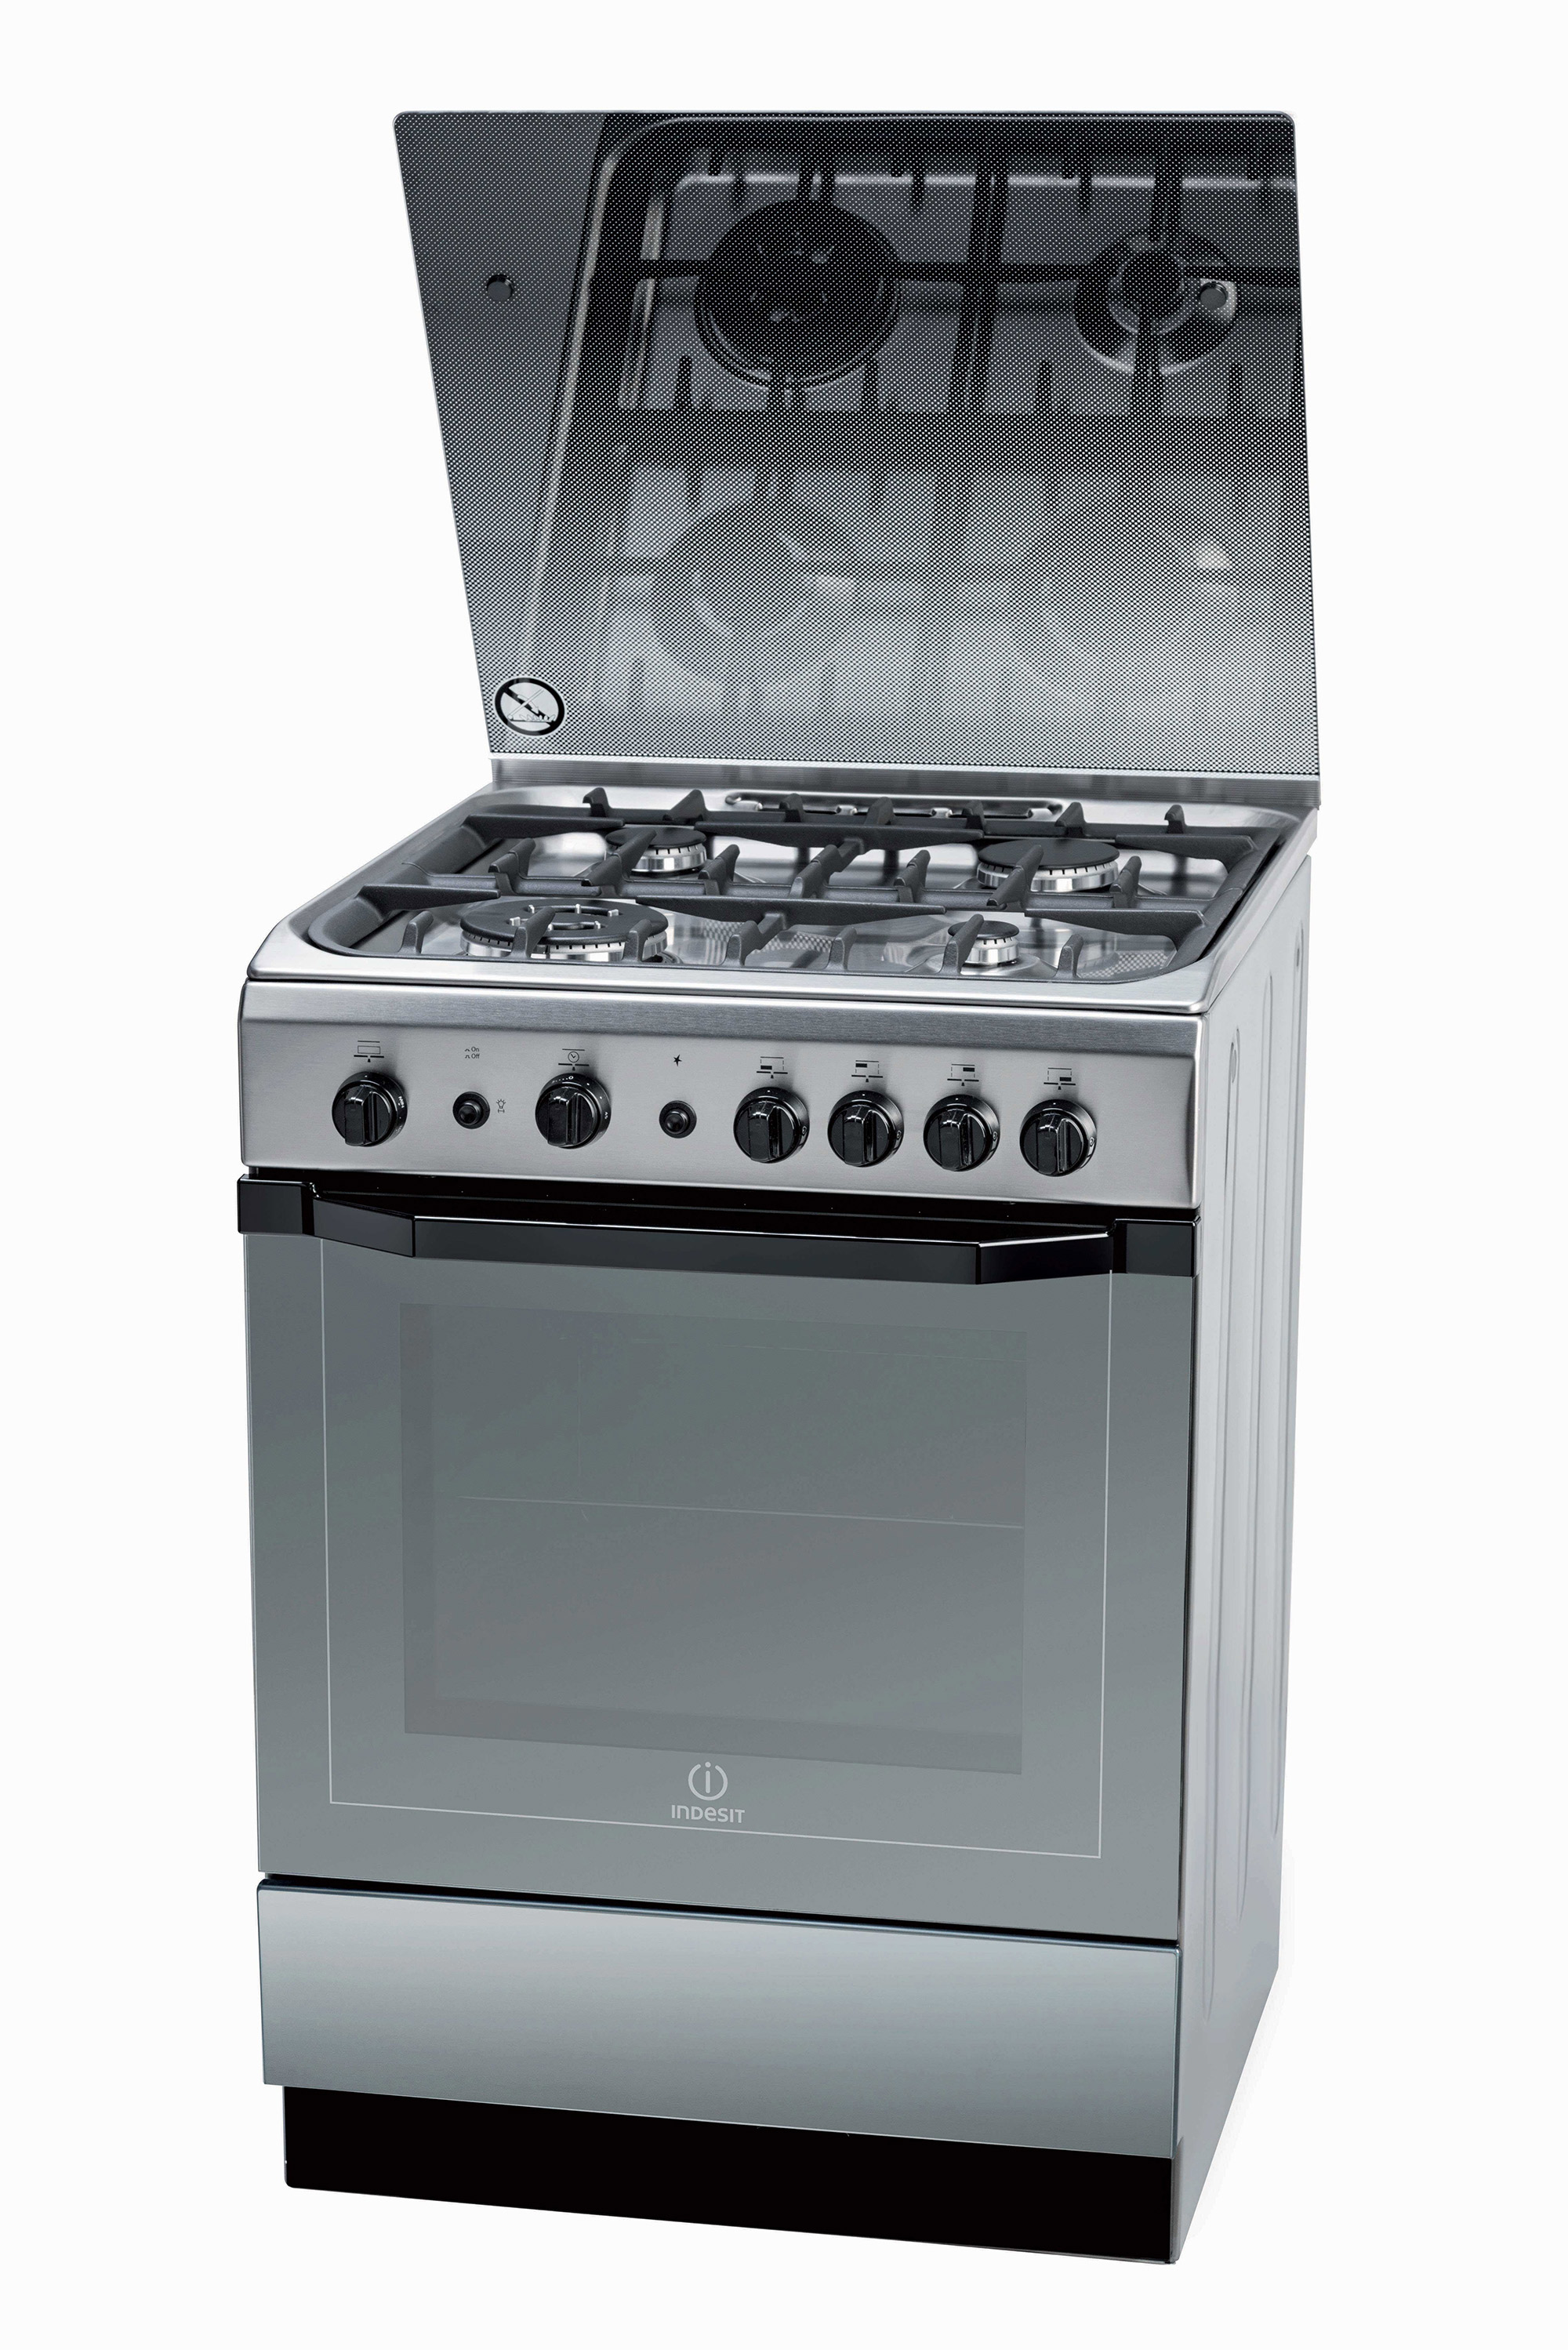 Indesit Gas Cooker 60 x 60 + Indesit Stainless Steel 60cm ...